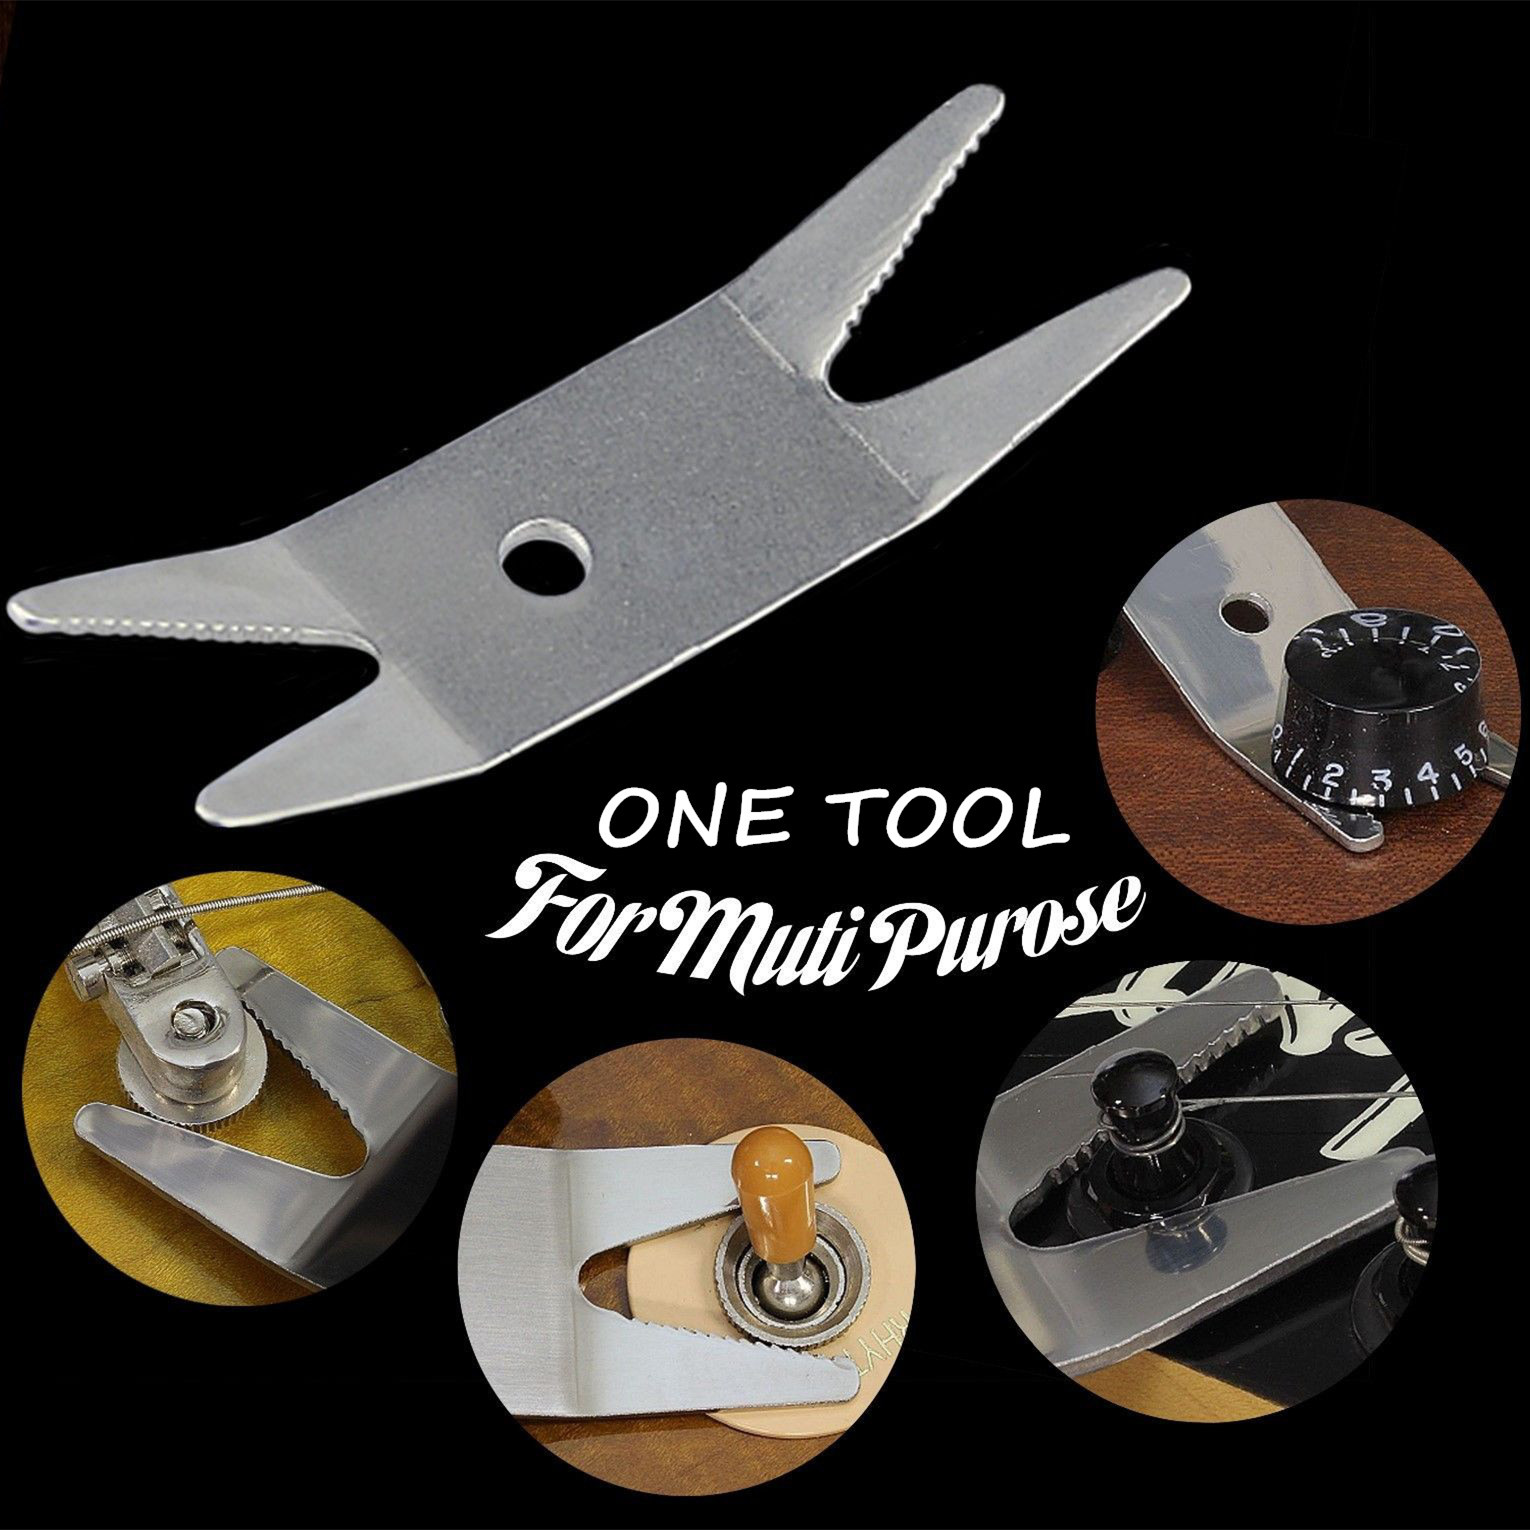 Guitar multi spanner wrench- fixes loose jacks, pots, switches, tuners